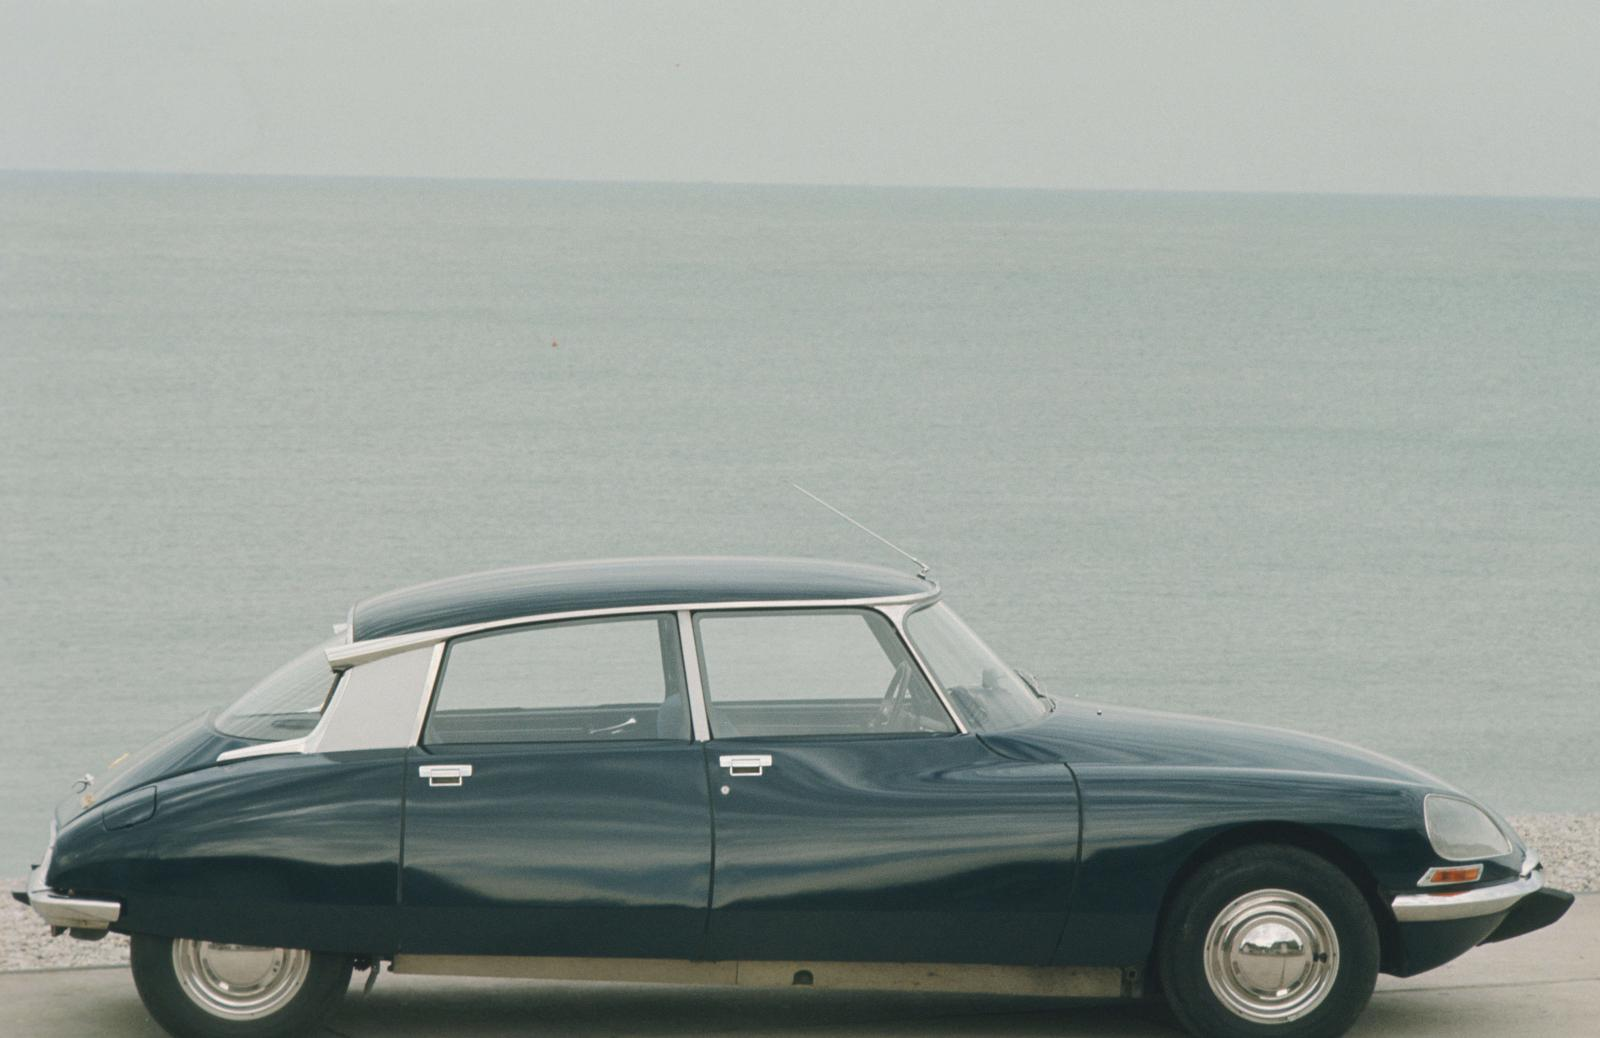 Citroën DS 21 - 1968 - Orilla del mar